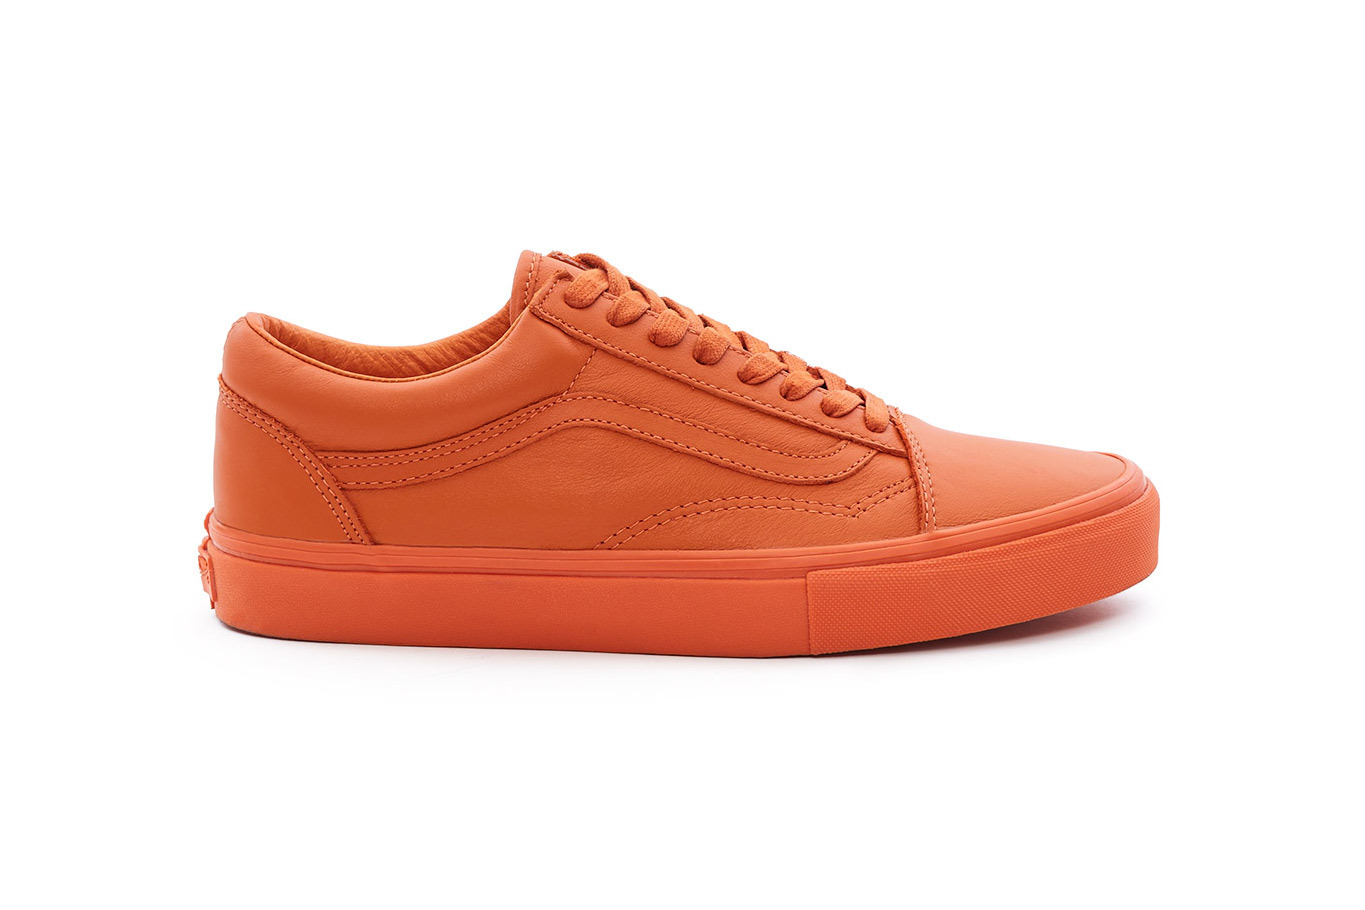 vans-opening-ceremony-leather-mono-pack-3